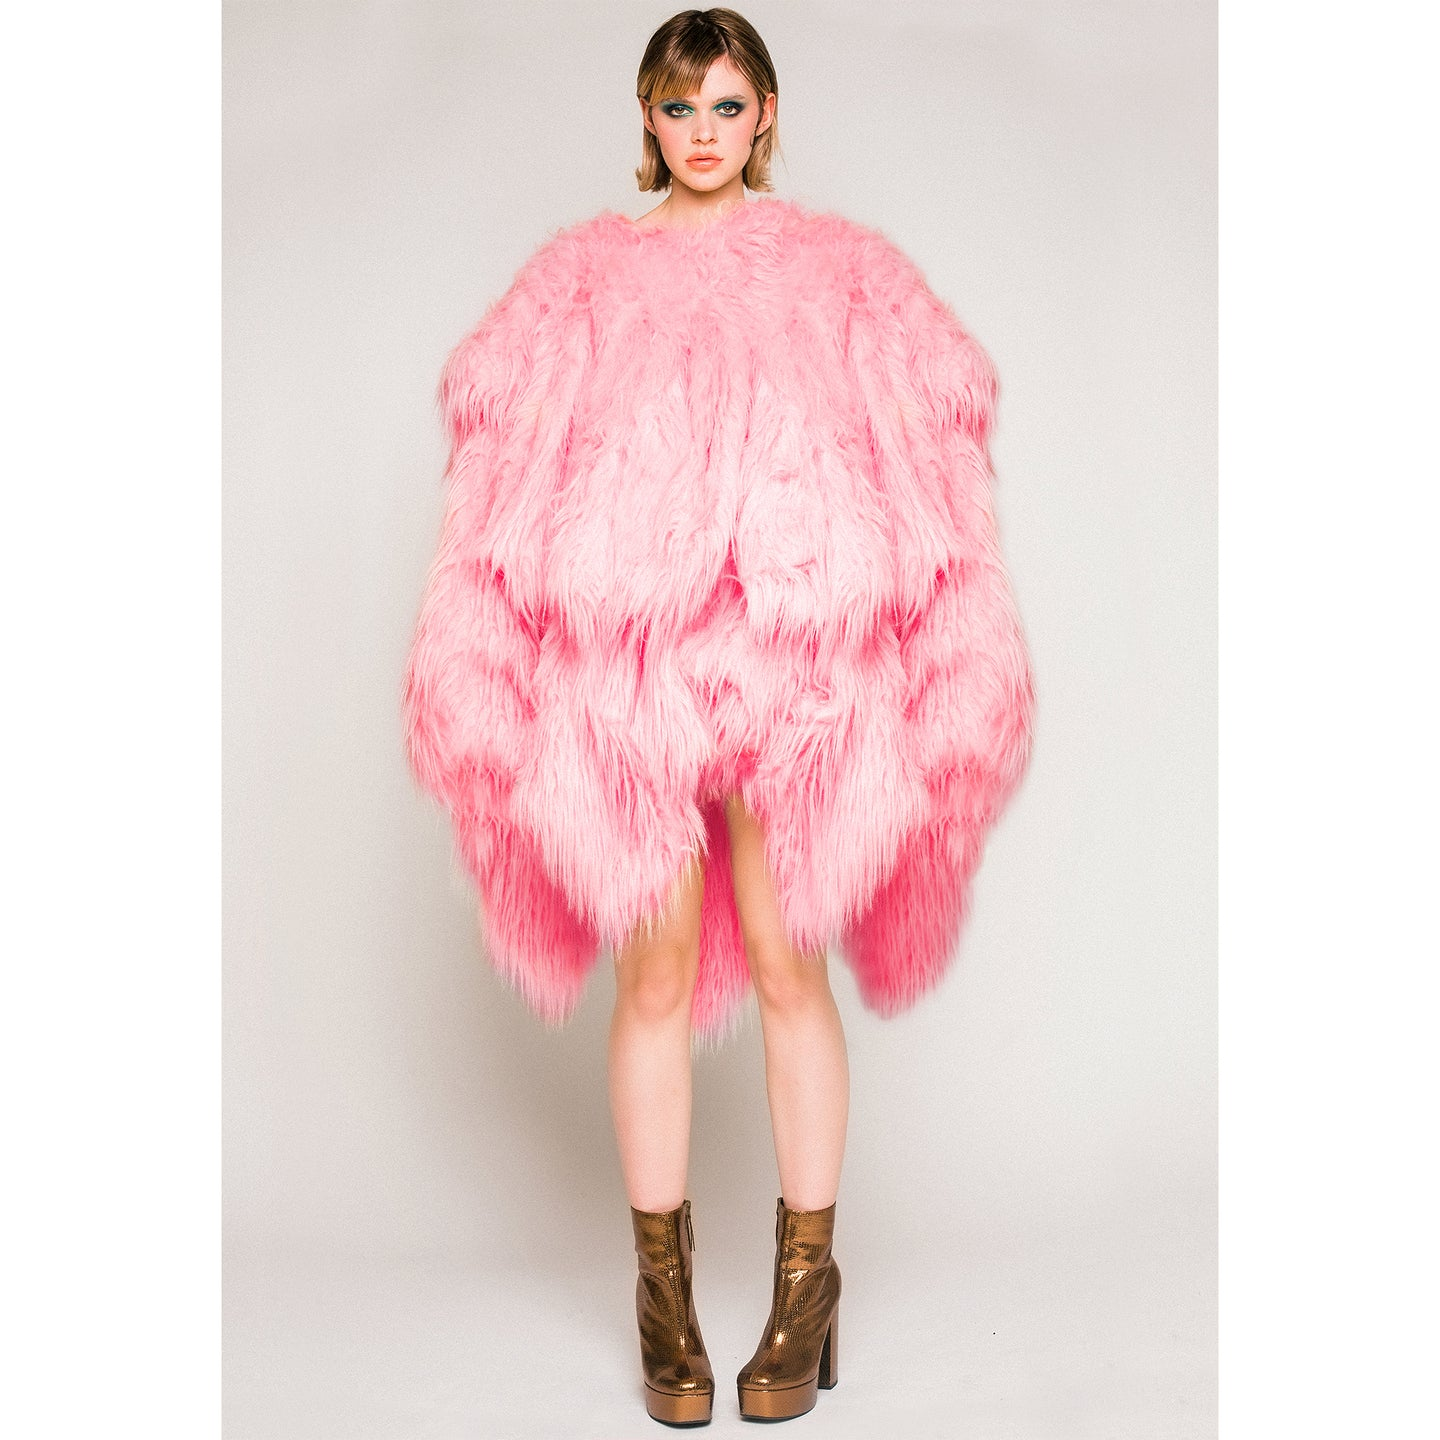 Adeline Faux Fur Coat - Candy Pink - Made To Order - One Size